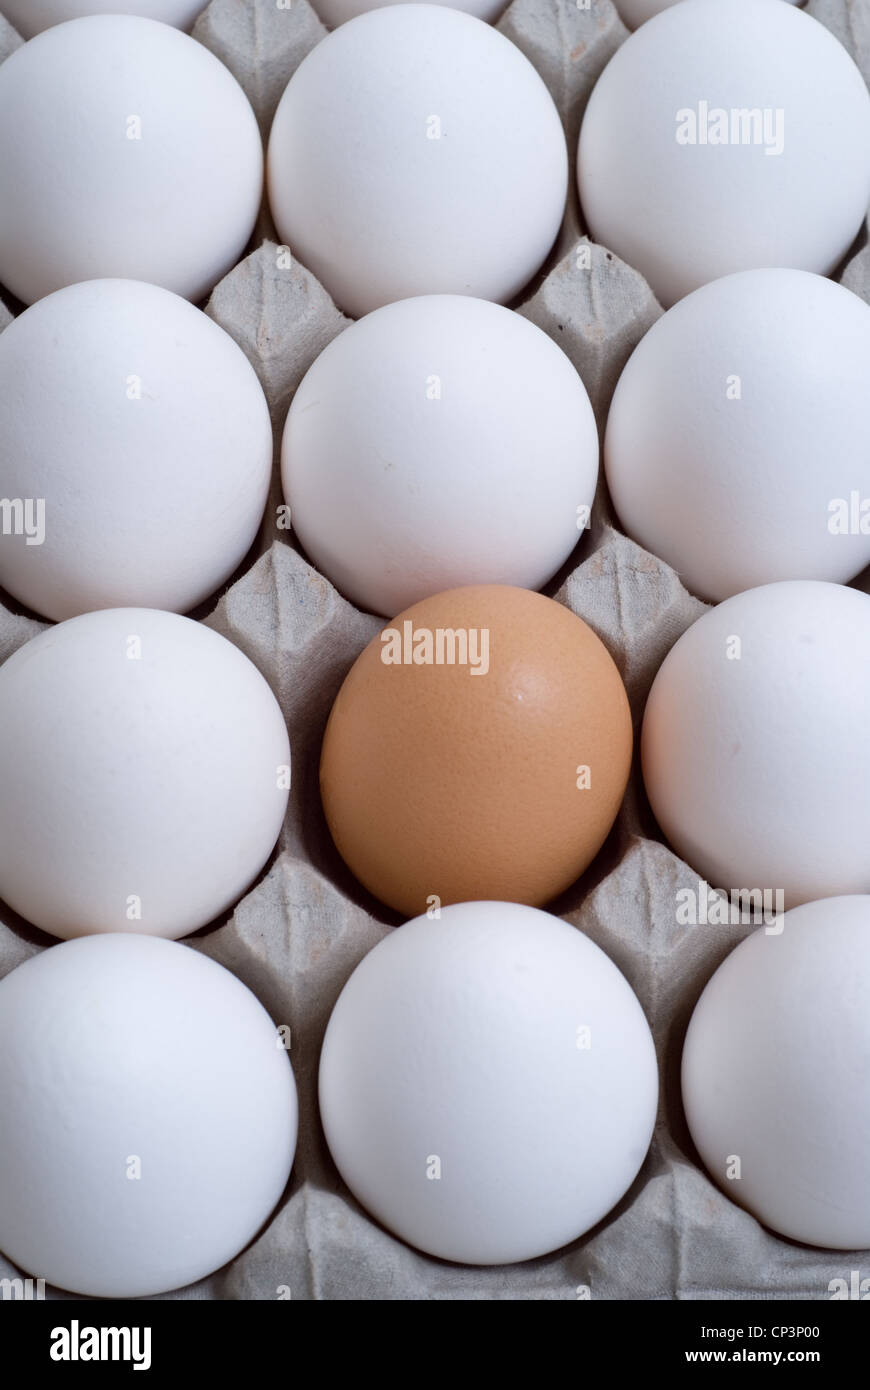 White eggs with a brown egg, conceptual images. - Stock Image